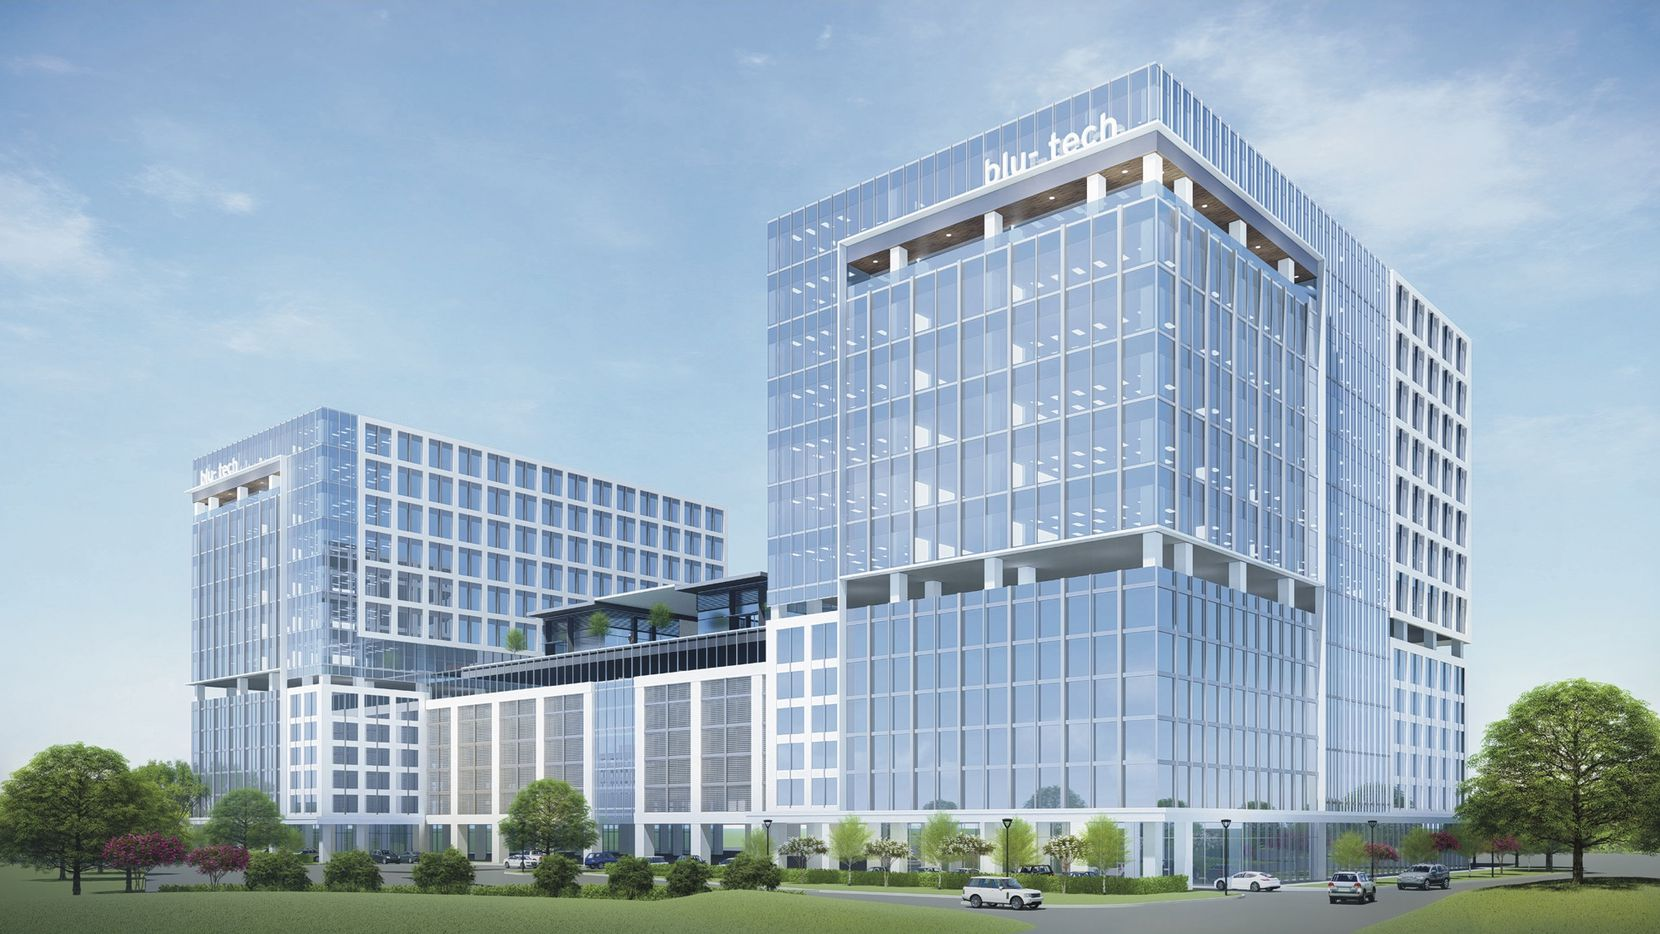 The project planned at the Dallas North Tollway and Headquarters Drive will include two office towers and a hotel.